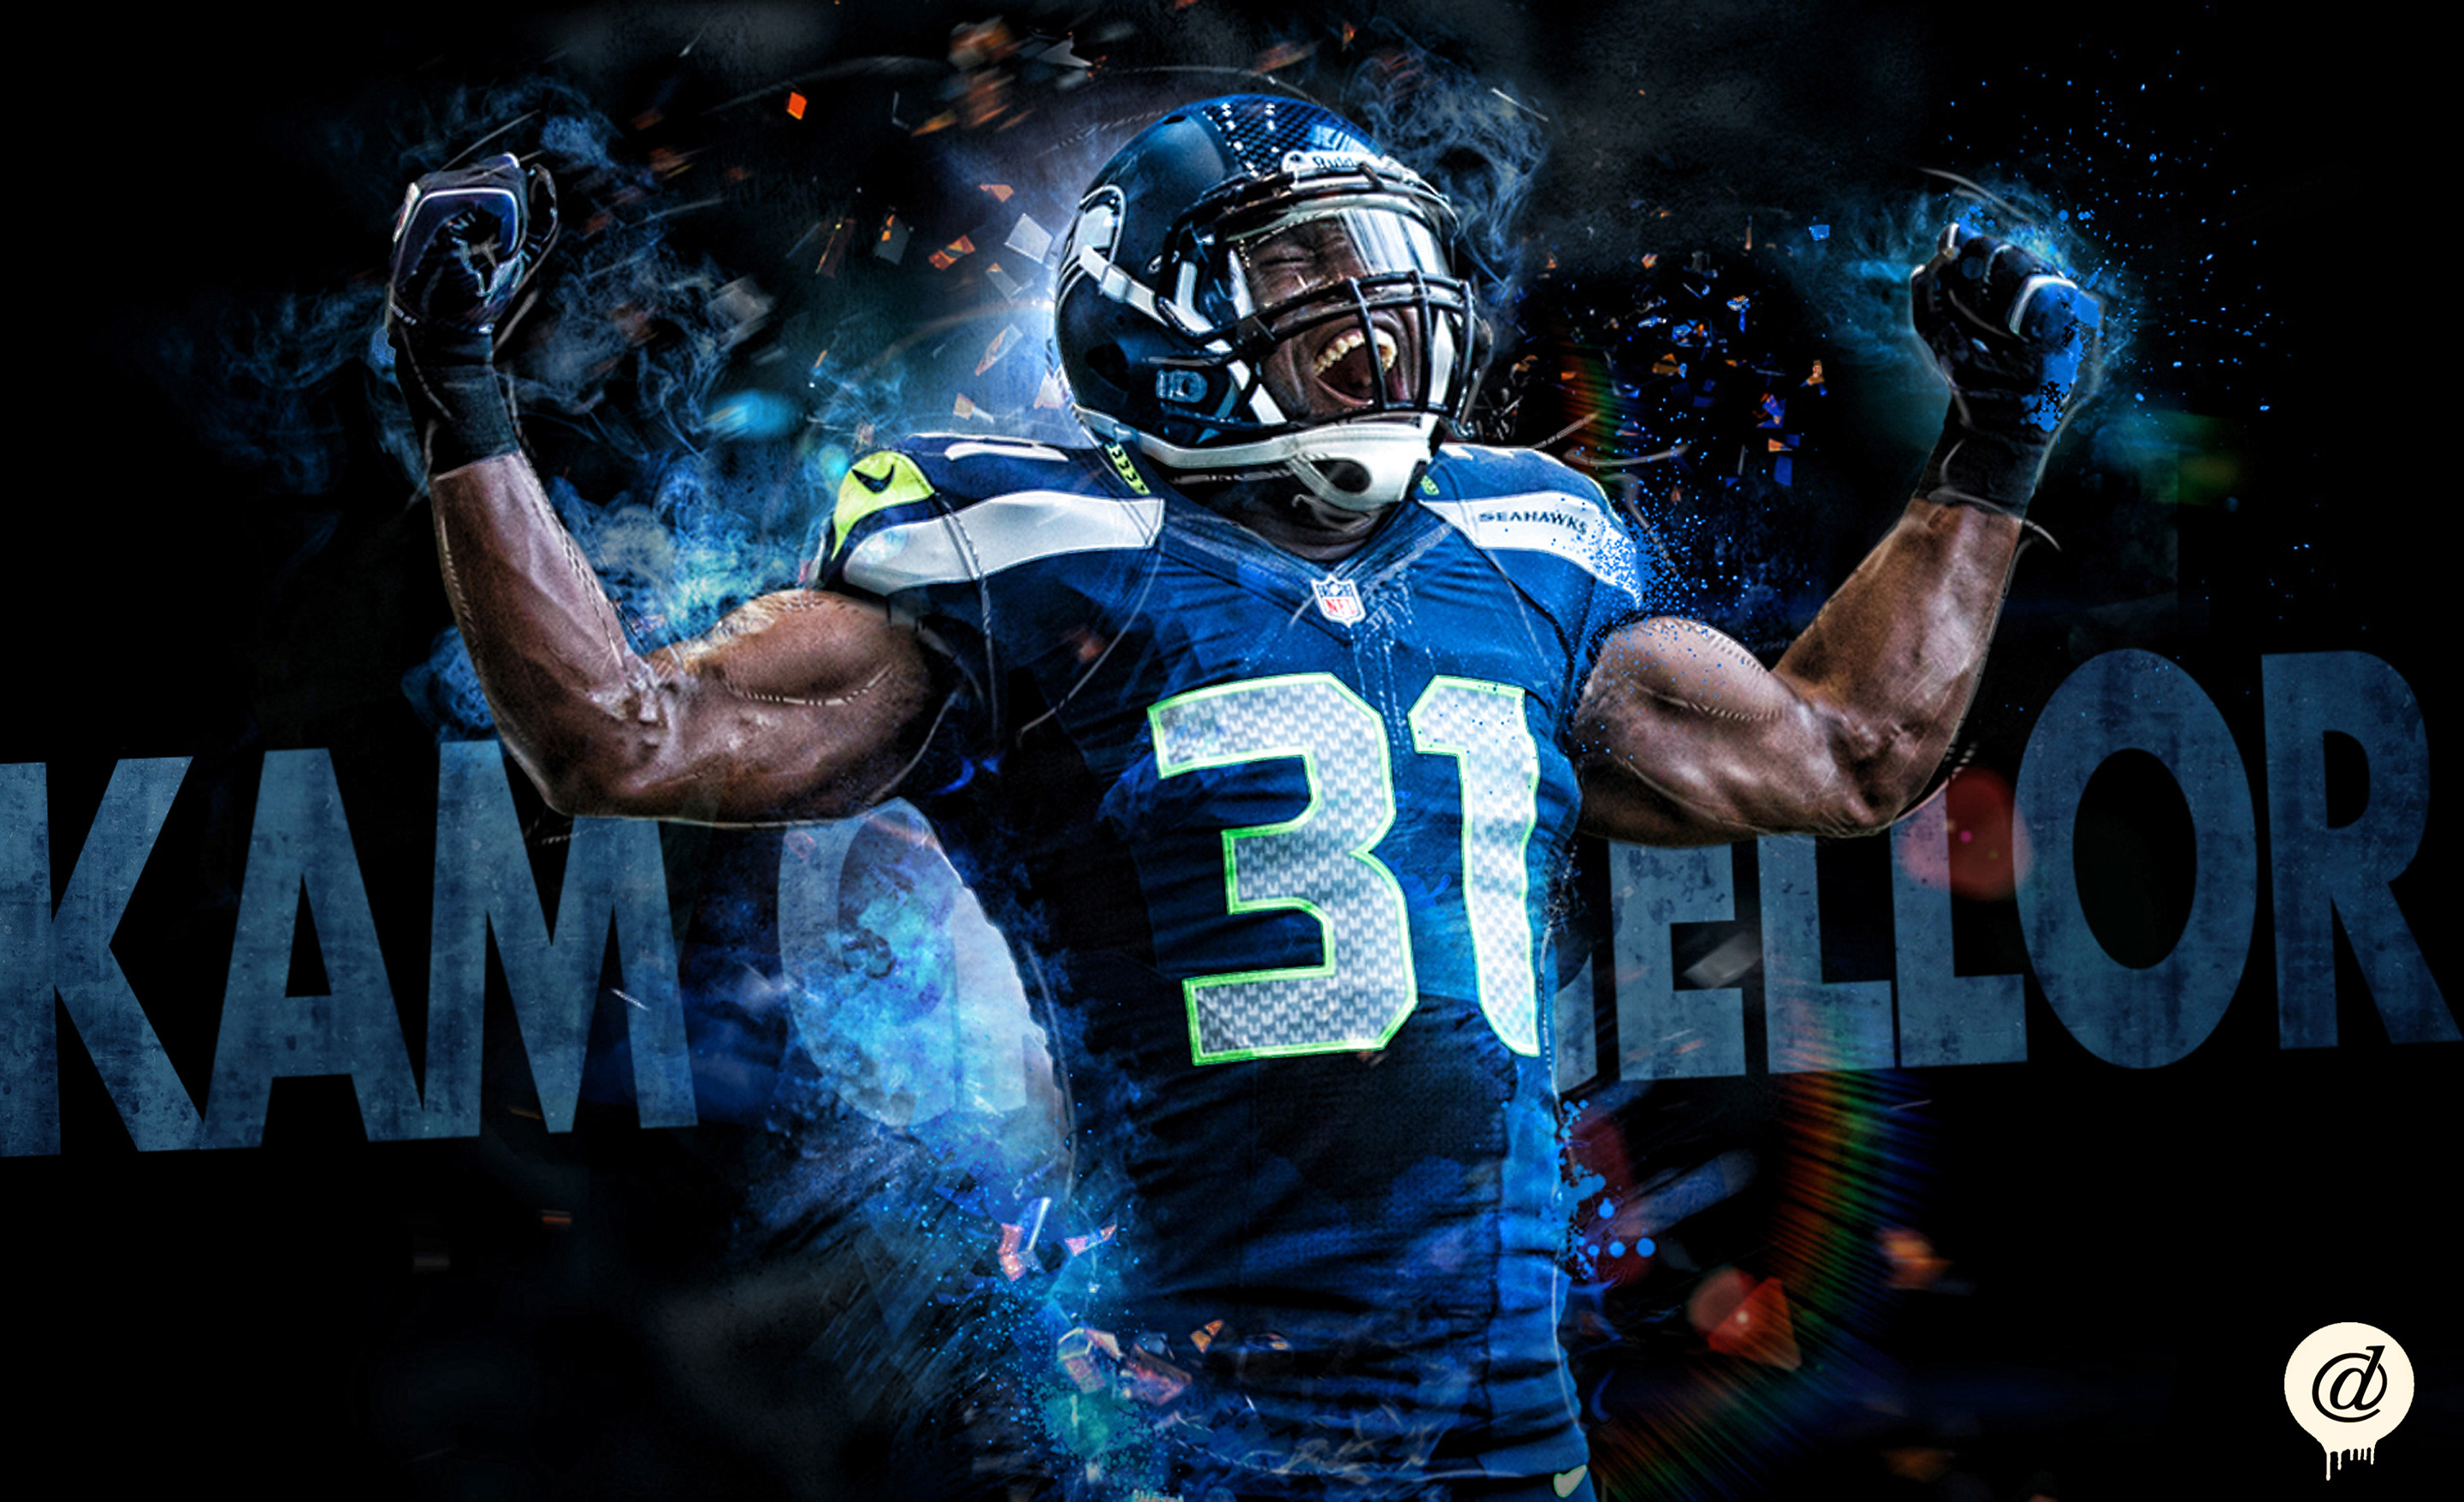 Nfl football wallpaper desktop 52 images 2880x1755 free football wallpaper nfl desktop wallpaper hd free download pc backgrounds beautiful football hd wallpapers voltagebd Image collections